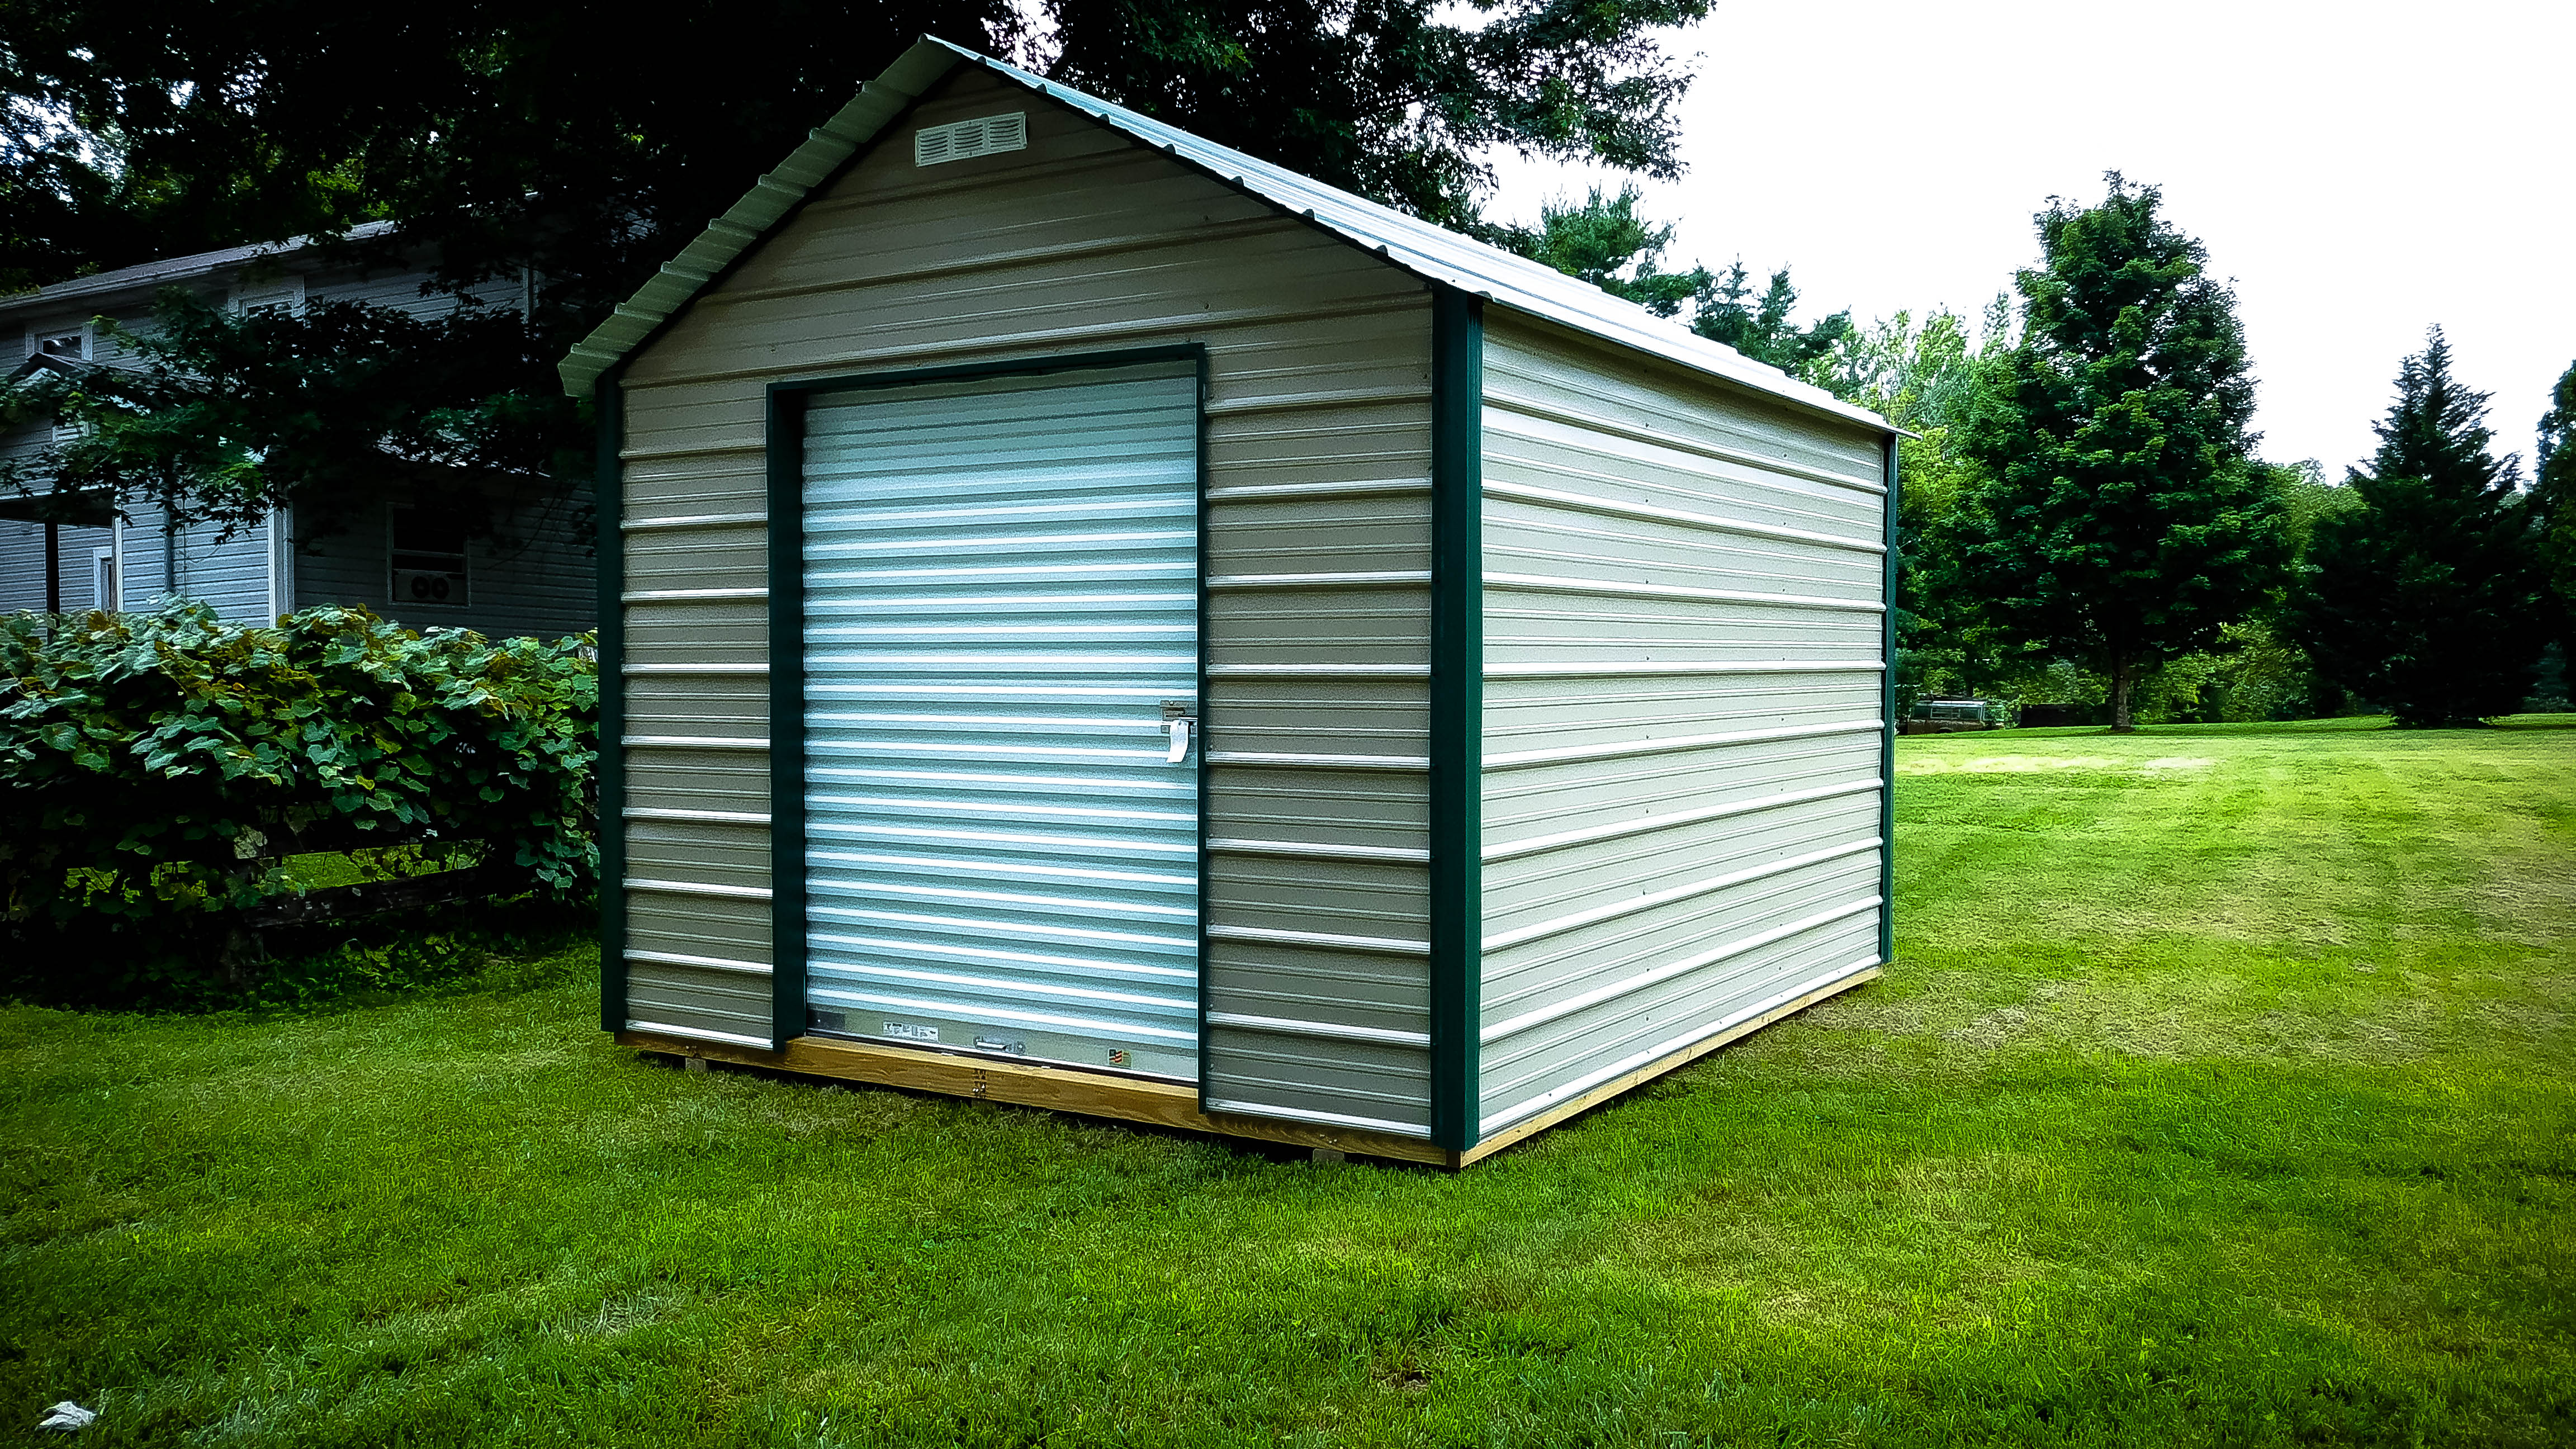 12x36 Metal Carport : Rent to own storage buildings sheds barns lawn